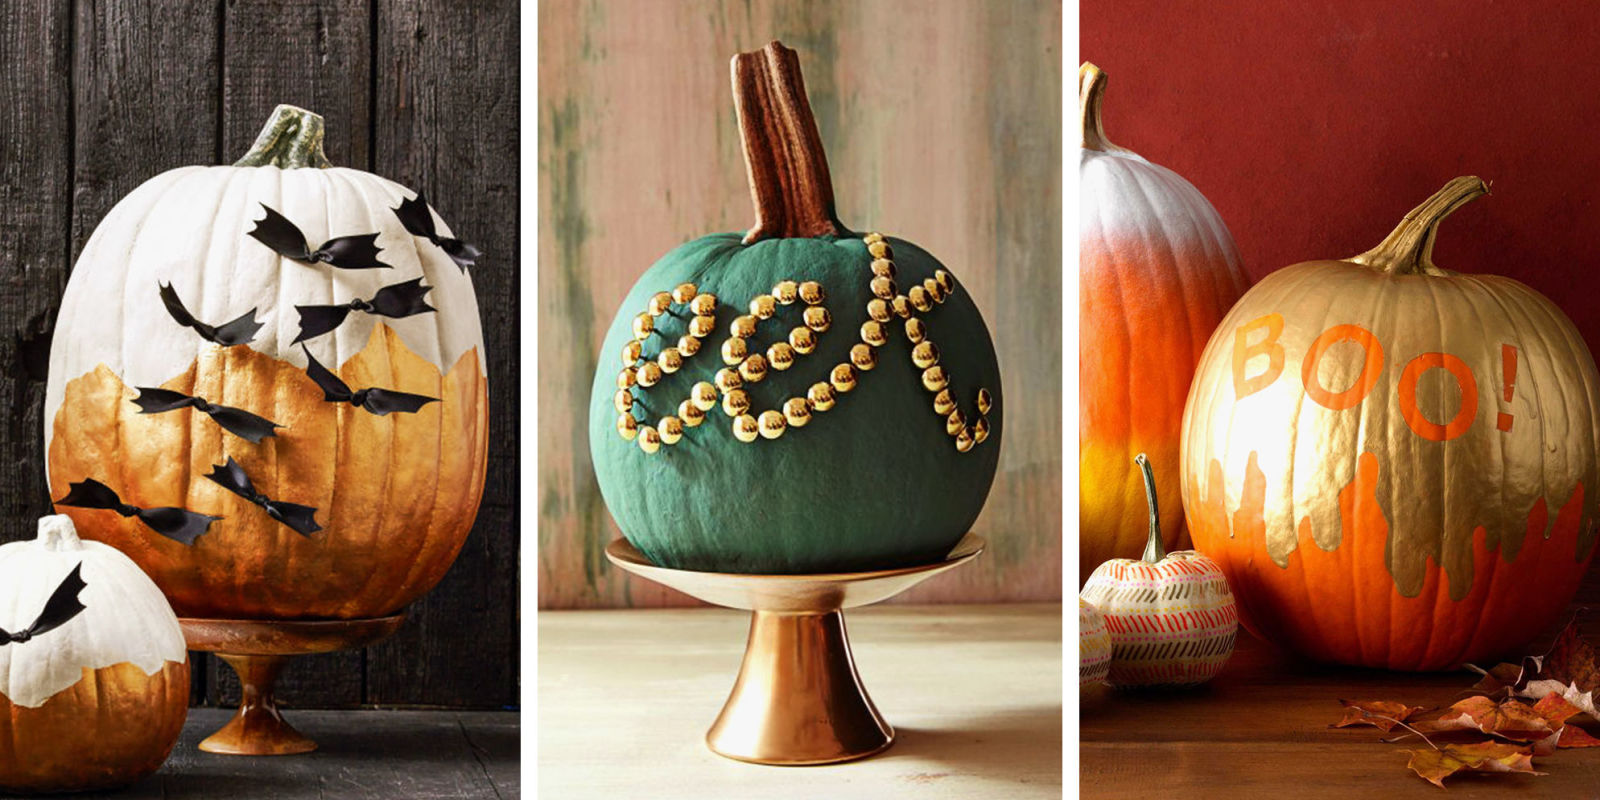 15 best pumpkin decorating ideas for halloween 2018 no carve pumpkin decorating ideas - Pumpkin decorating ideas autumnal decor ...